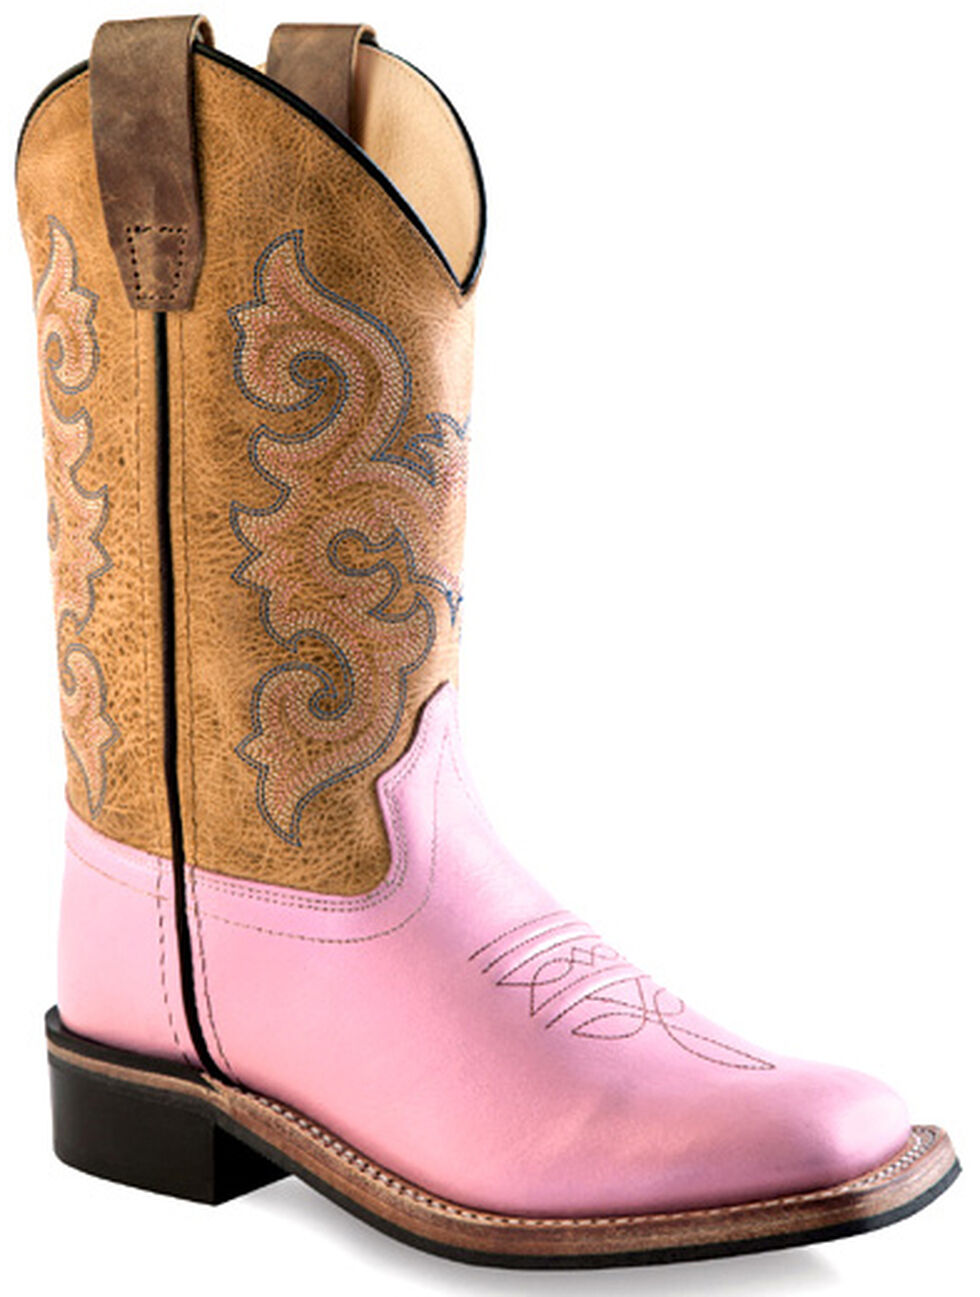 Old West Youth Girls' Pink Cowgirl Boots - Square Toe , Pink, hi-res